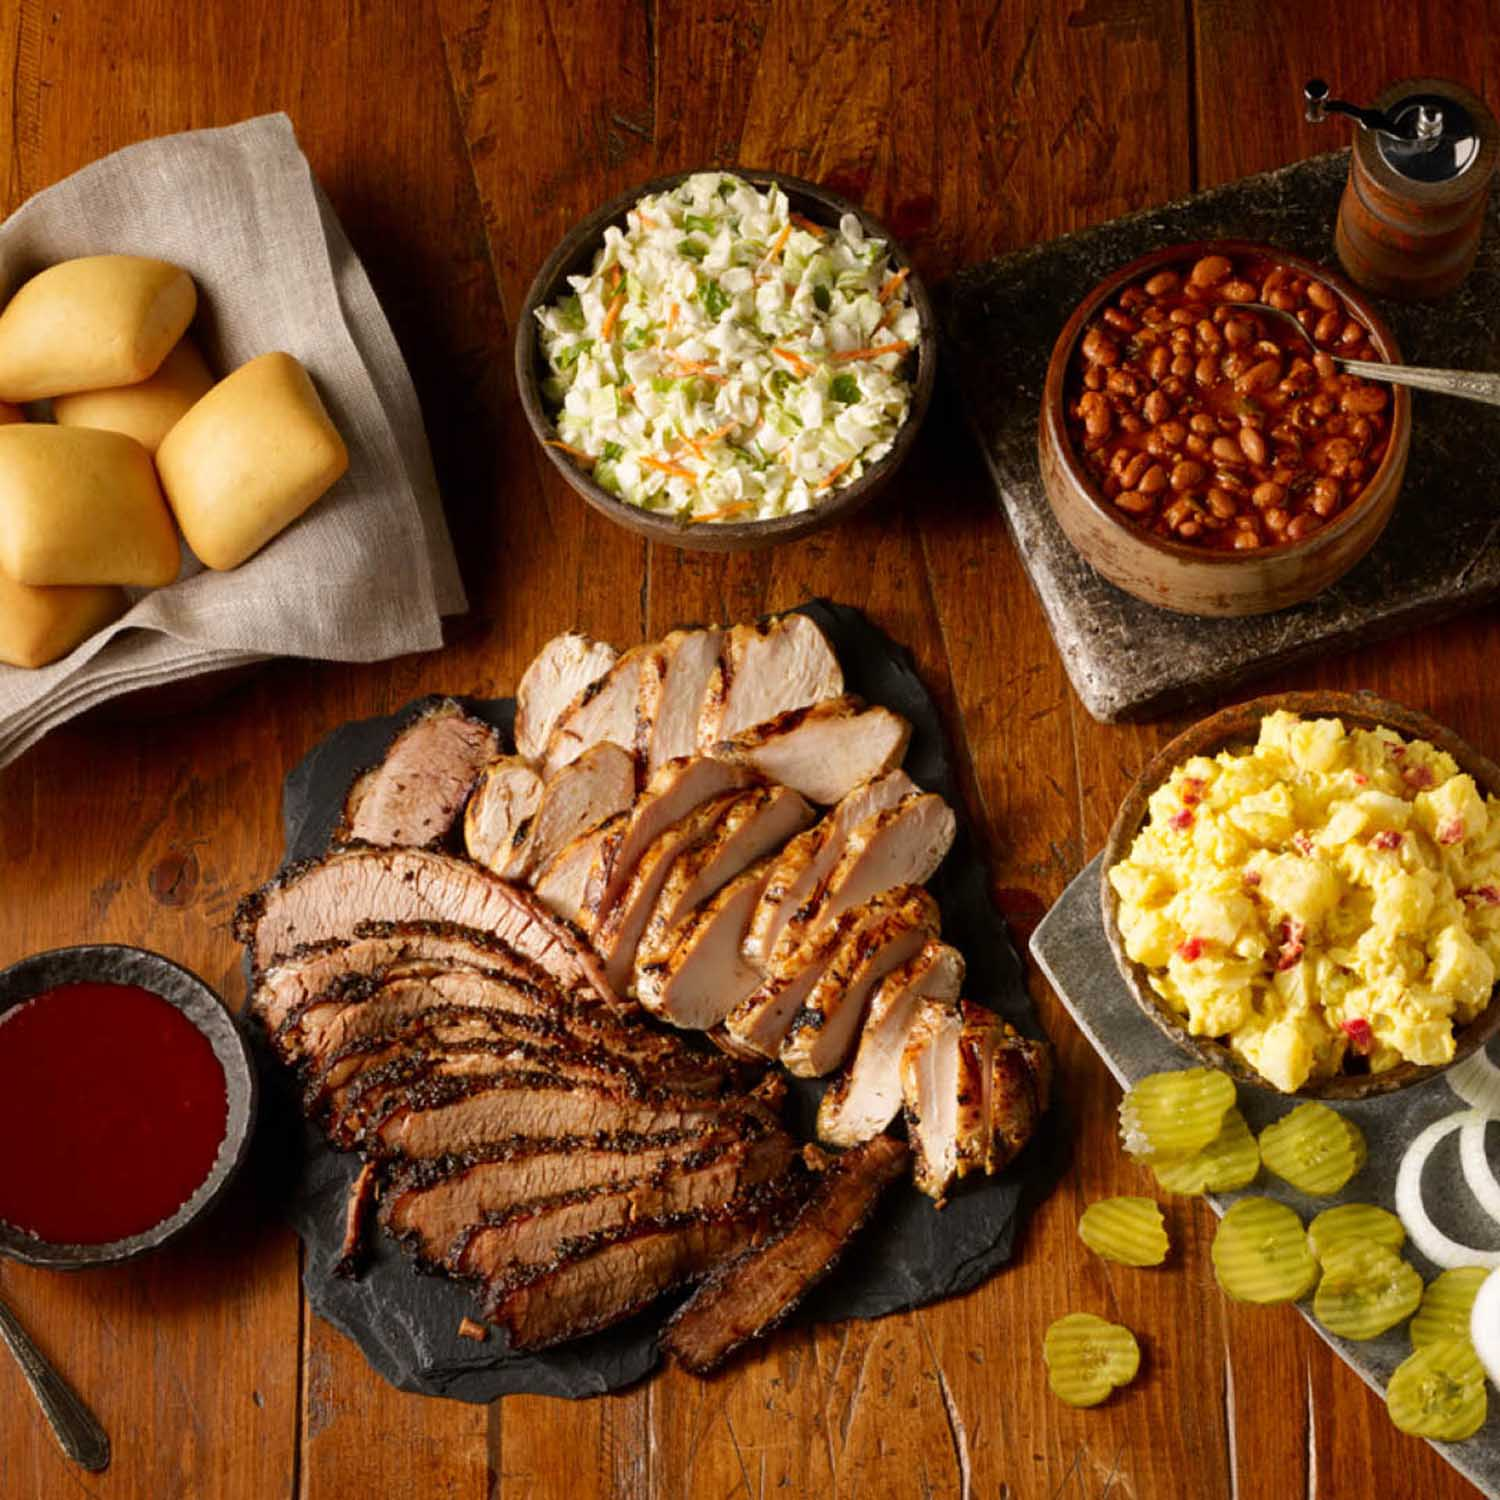 Dickey's Barbecue Pit Offers Barbecue Beans in Select Texas Grocery Stores